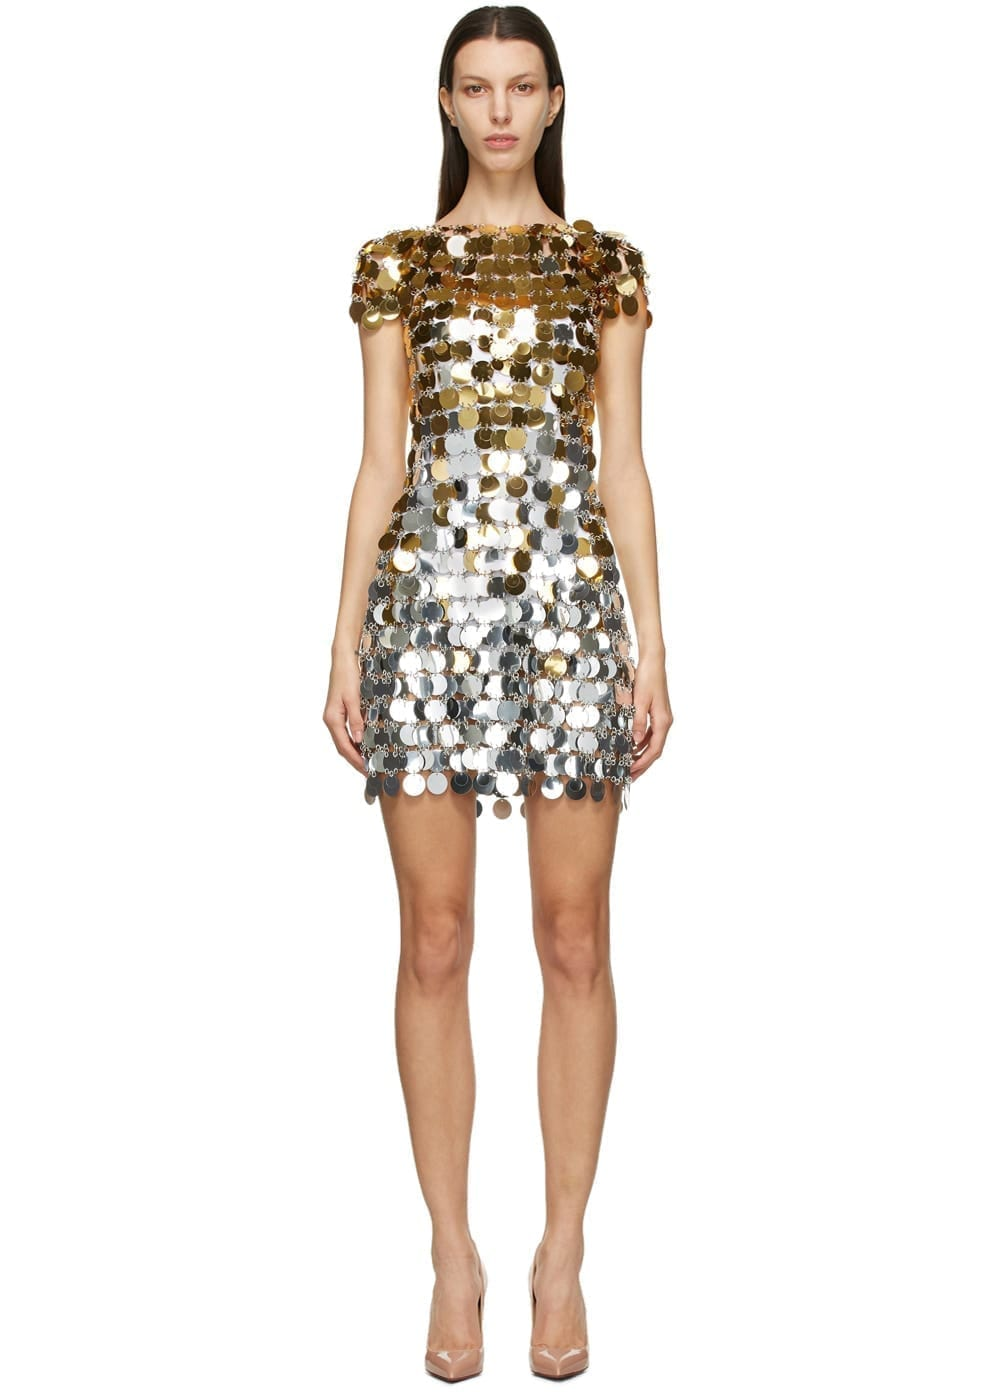 PACO RABANNE Silver & Gold Disc Dress